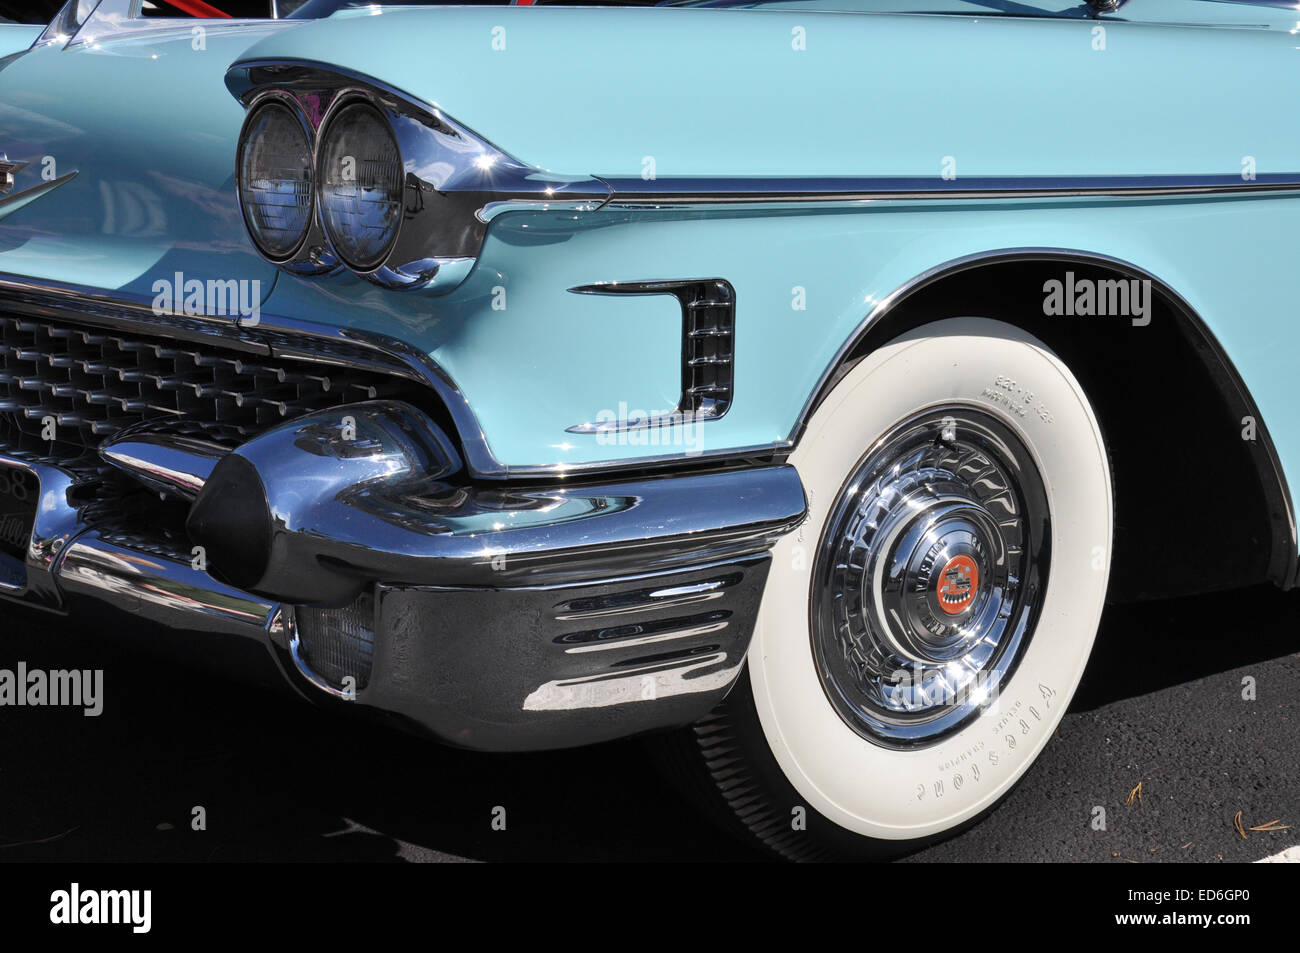 the front of a cadillac showing chrome and white wall tires stock image